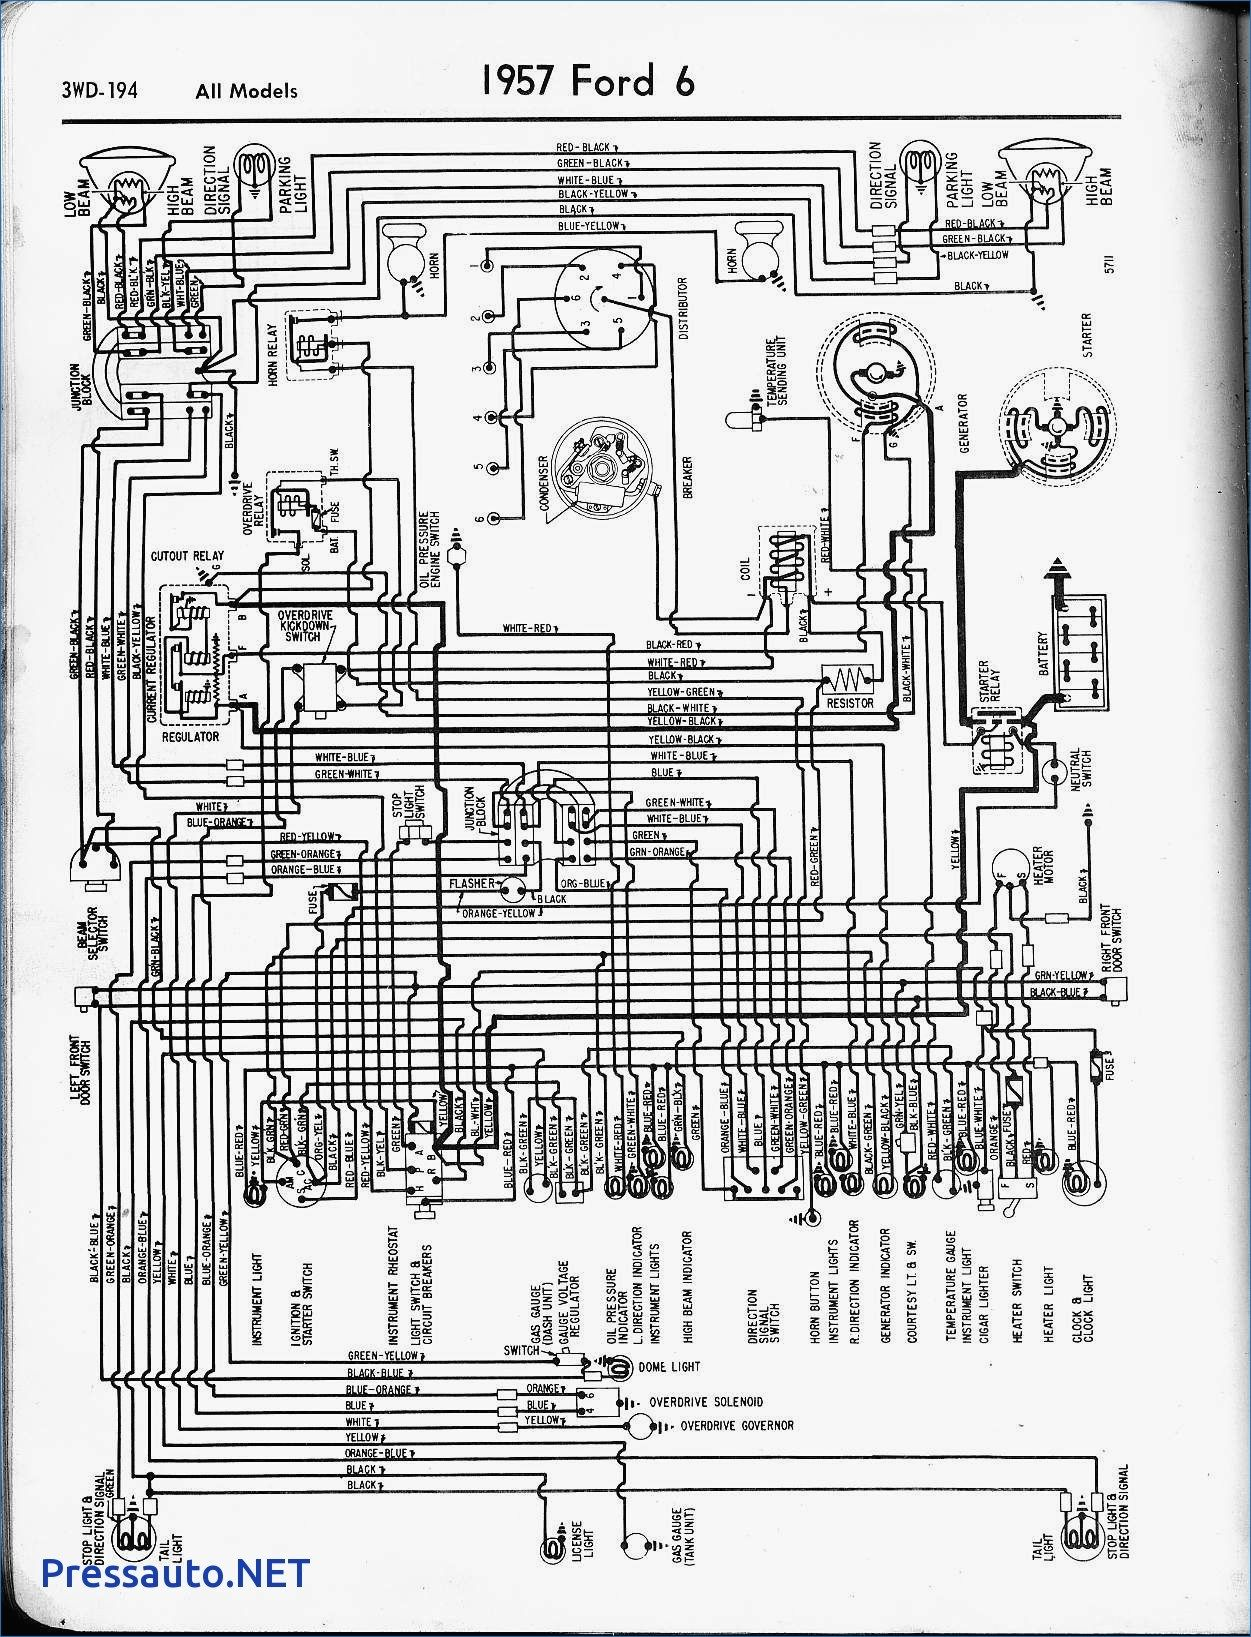 small resolution of peugeot 307 power steering wiring diagram pressauto net in on rh pinterest com wiring diagram peugeot